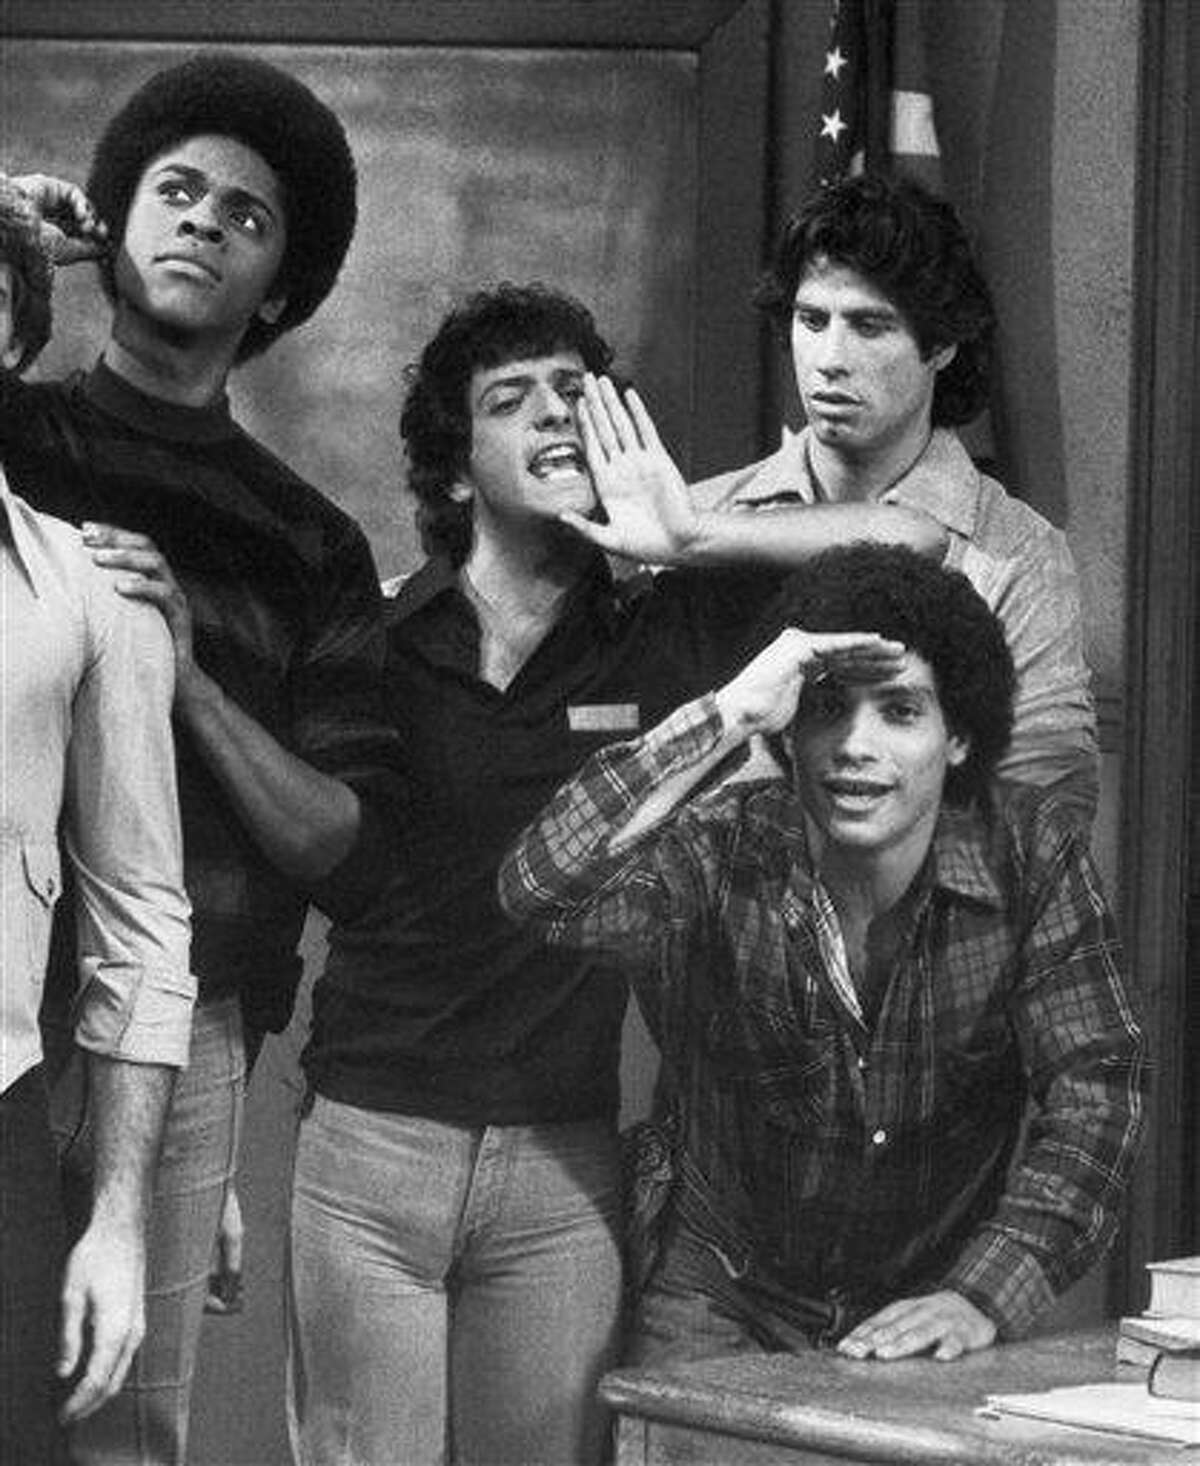 This 1978 file photo originally from ABC shows cast members, from left, Lawrence Hilton-Jacobs as Freddy Washington, Ron Palillo as Arnold Horshack, Robert Hegyes as Juan Epstein, foreground, John Travolta, rear, as Vinnie Barbarino from the television sitcom